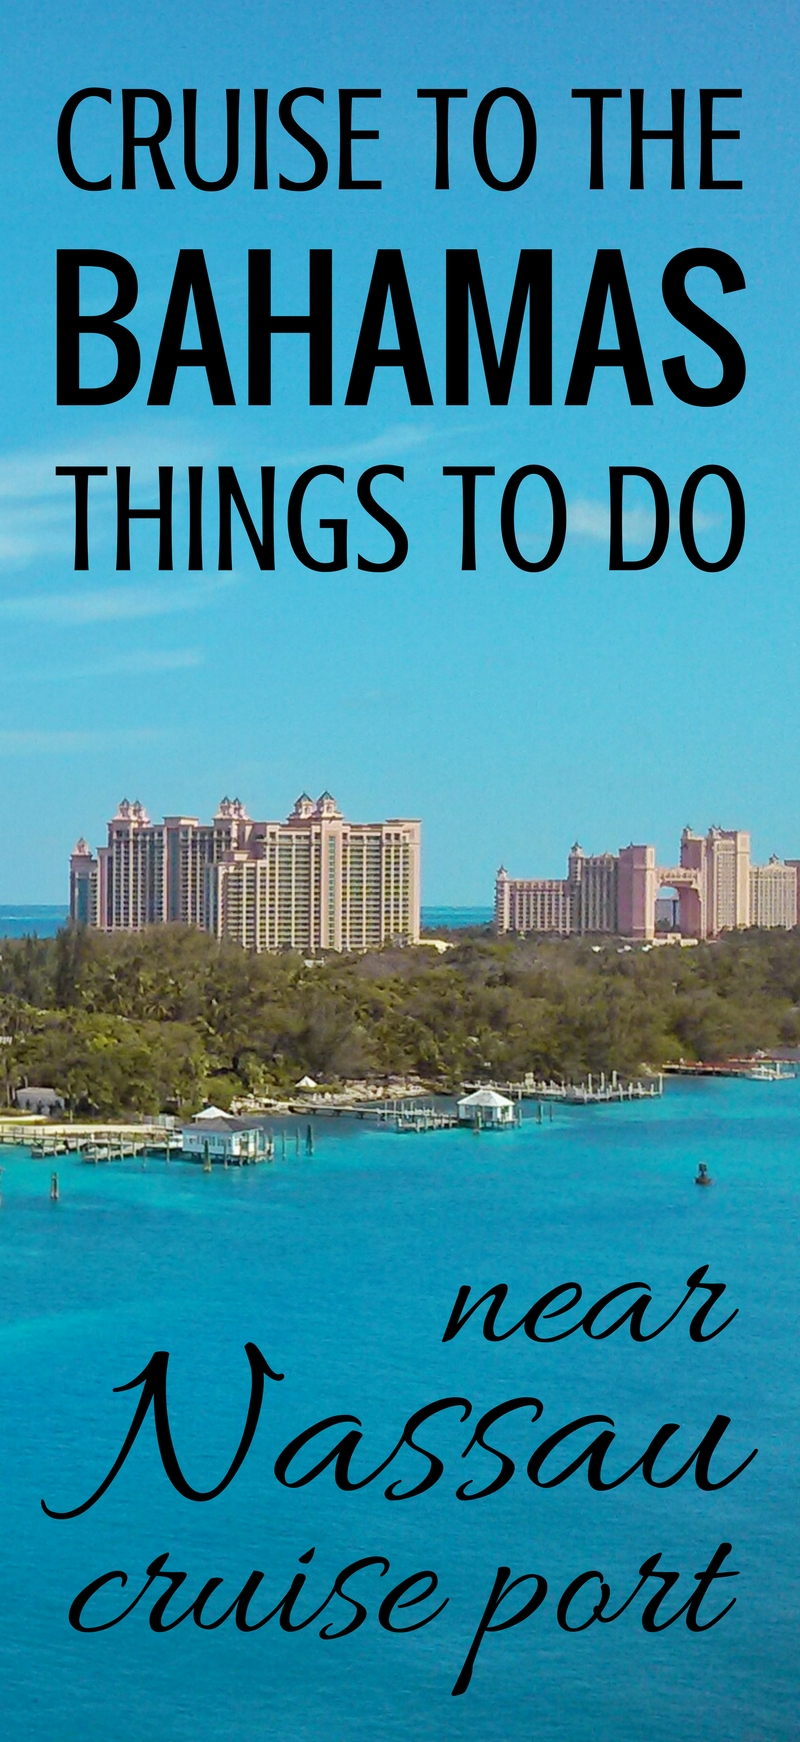 Things To Do In Nassau Bahamas Near Cruise Port: Free + with Travel To Nassau Bahamas From Florida